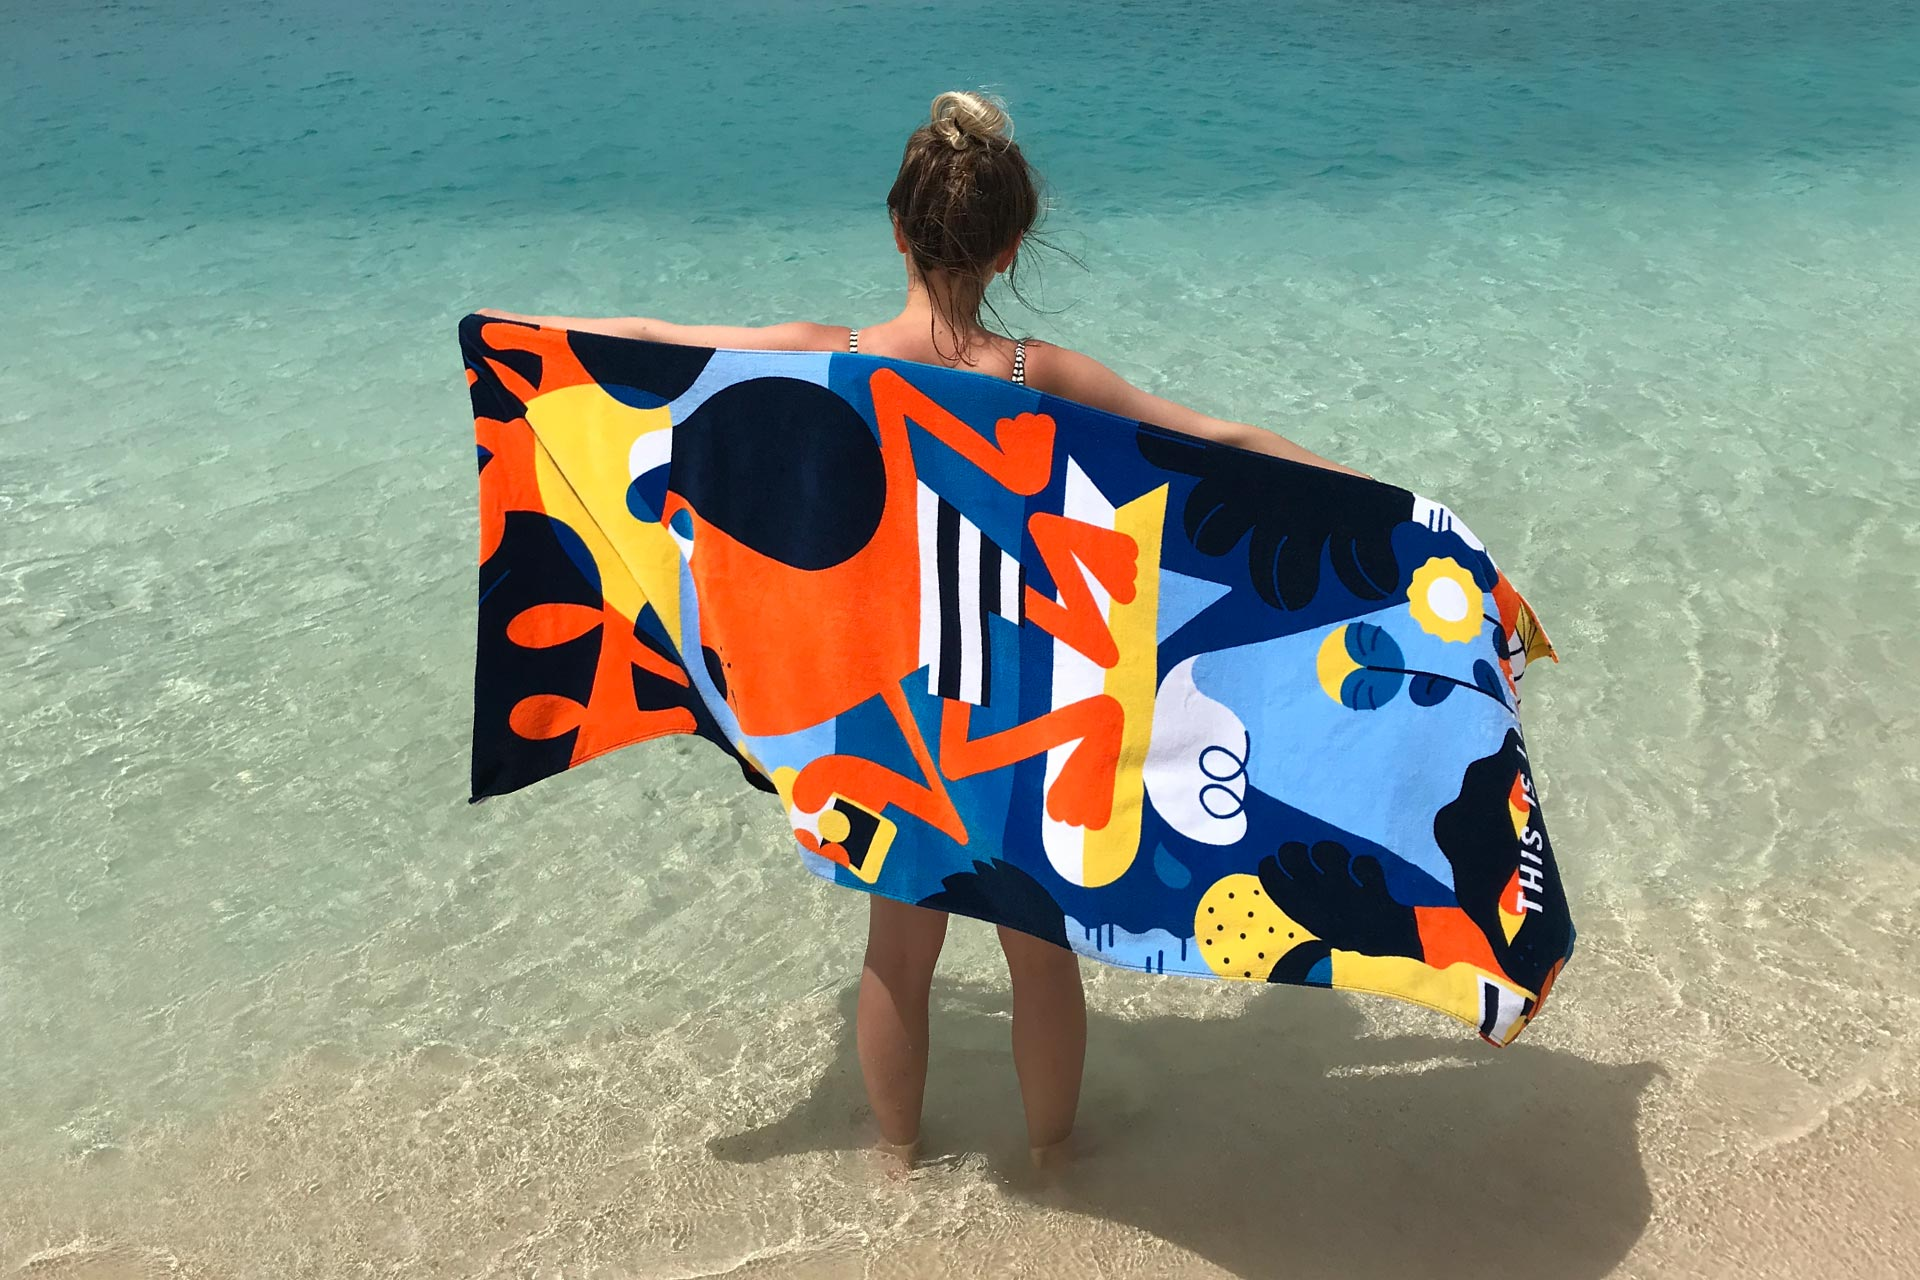 Hedof's beach towel illustration for Corona